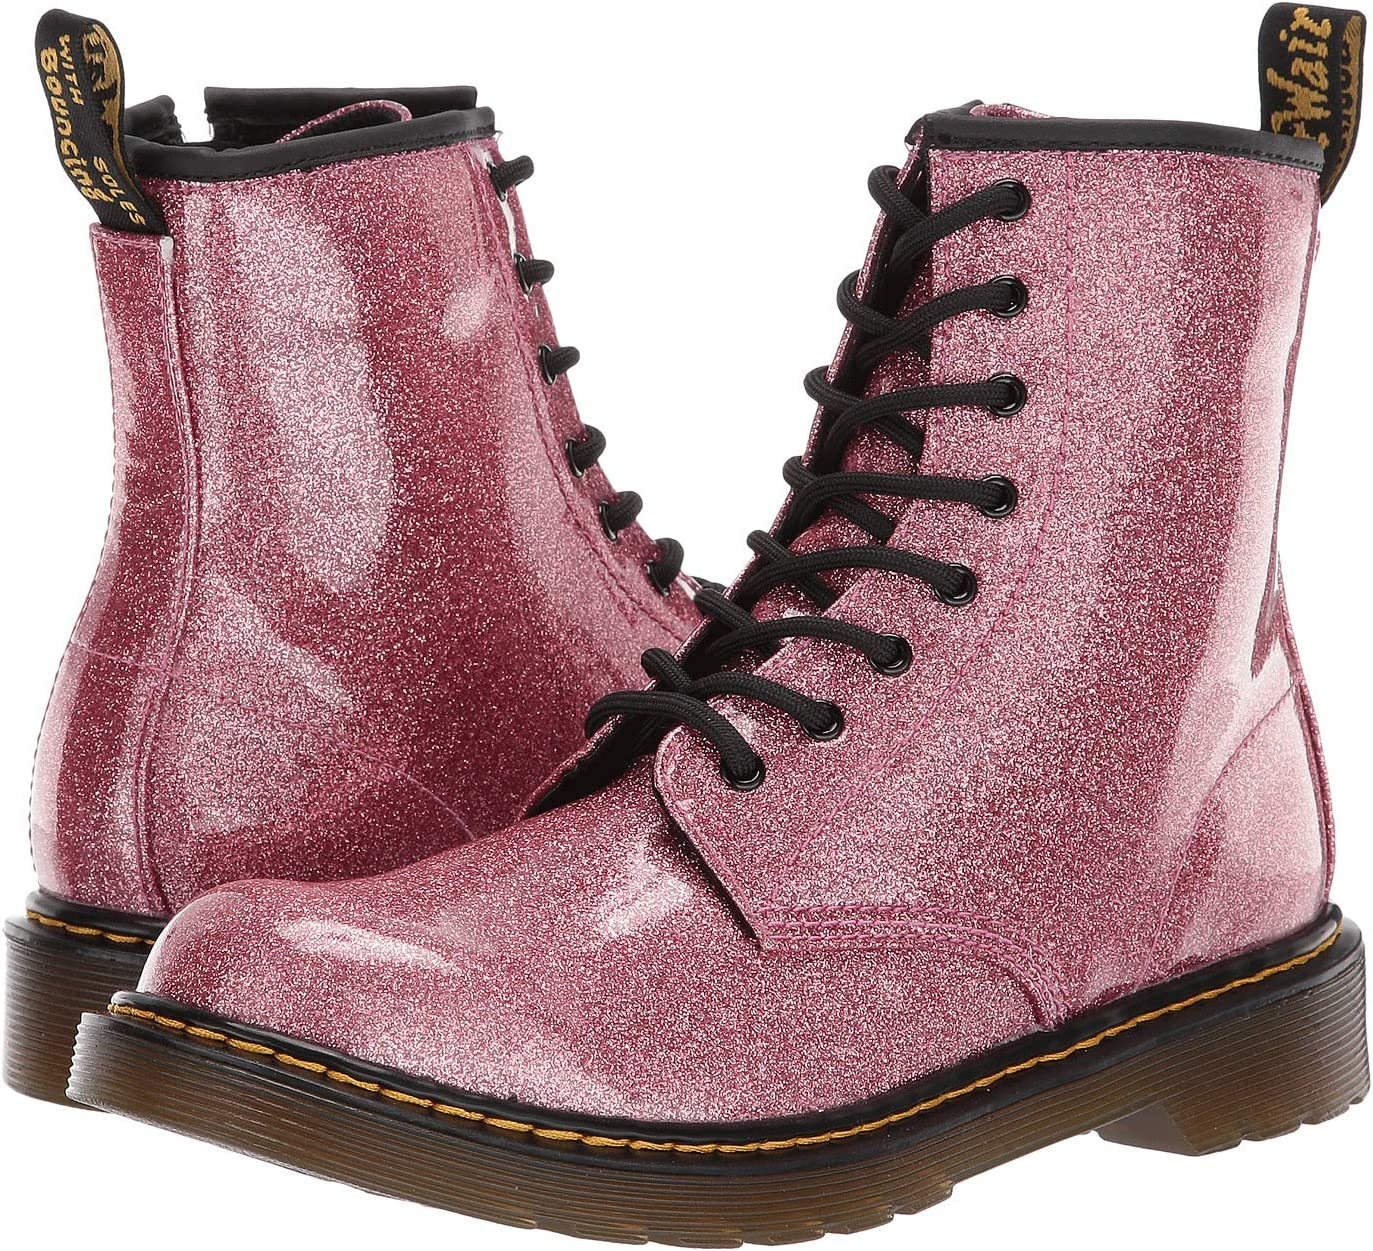 3a5adca723 Dr. Martens Boots, Shoes, and More | Zappos.com